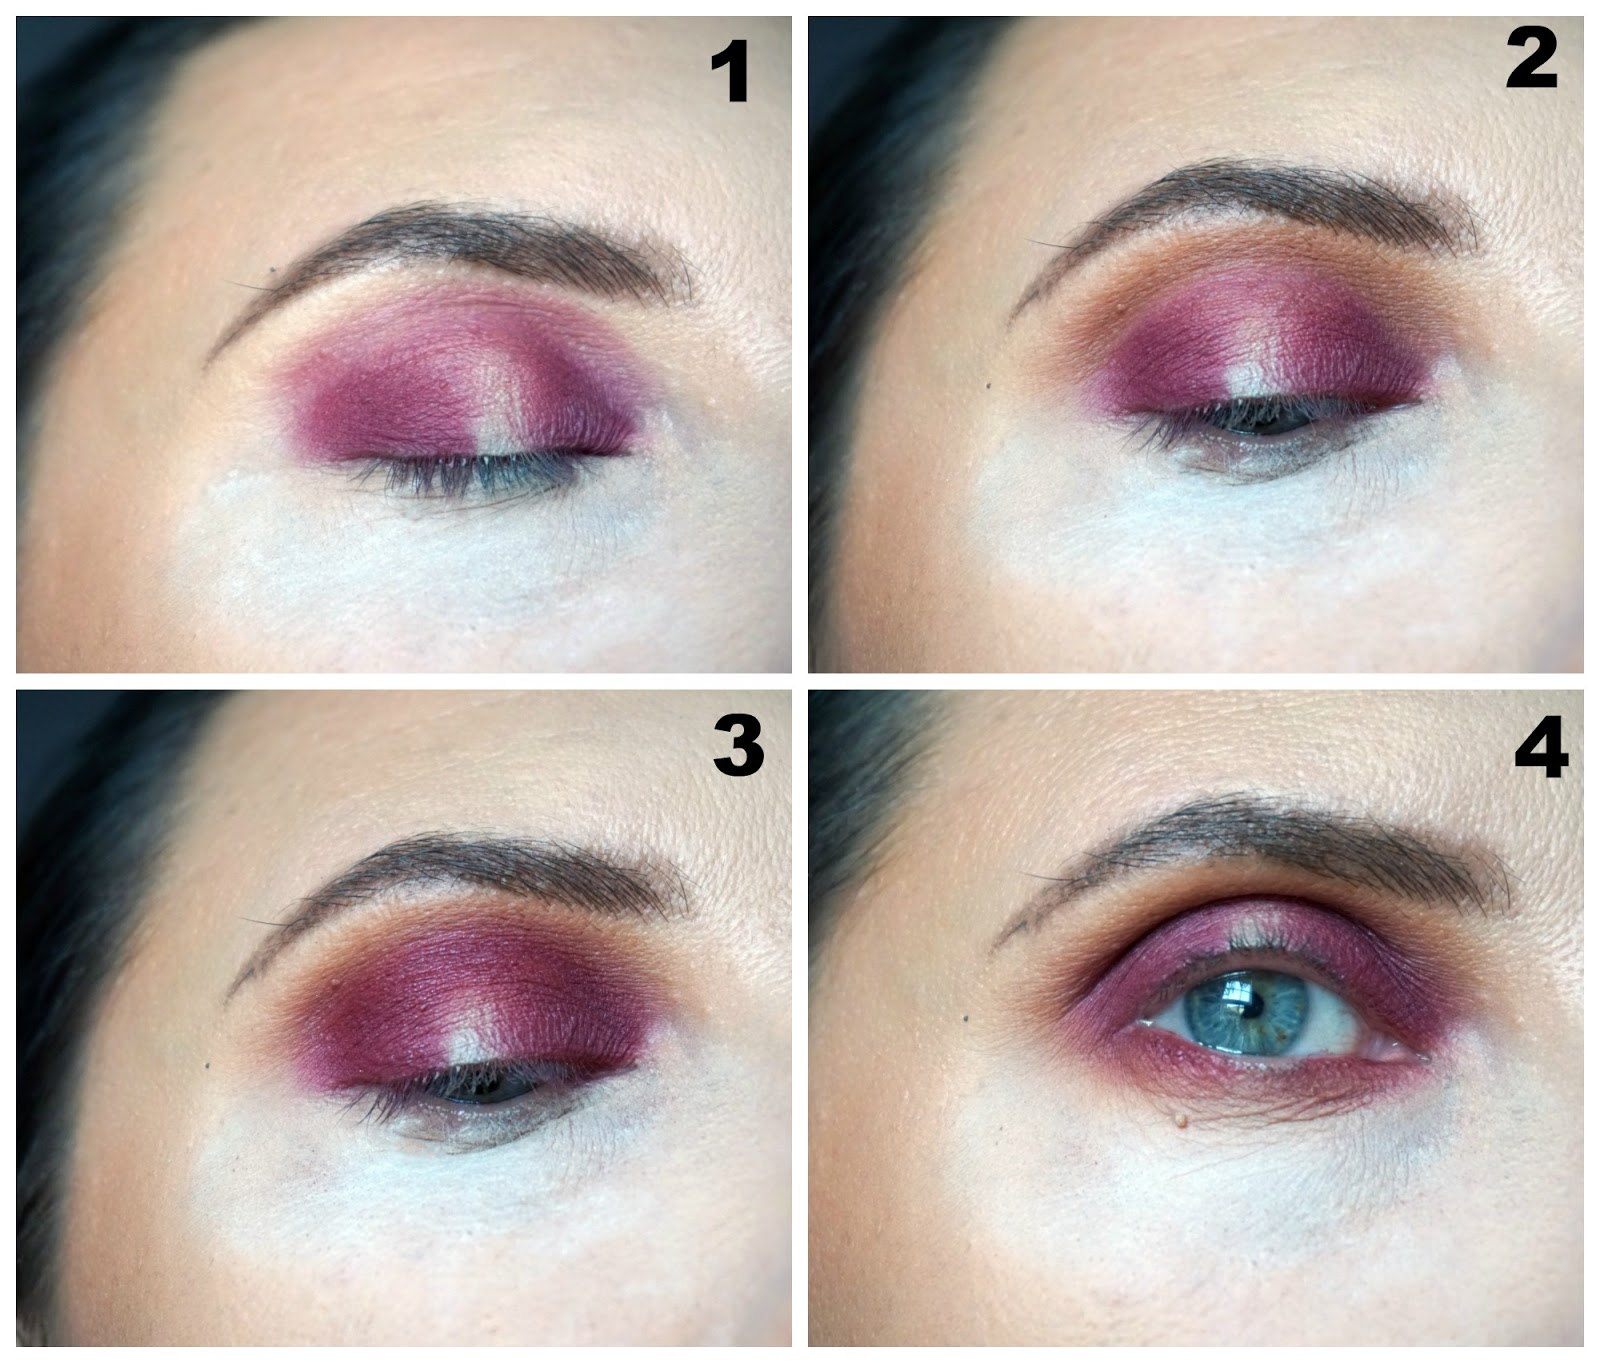 Date night eye look created with ABH Modern Renaissance palette